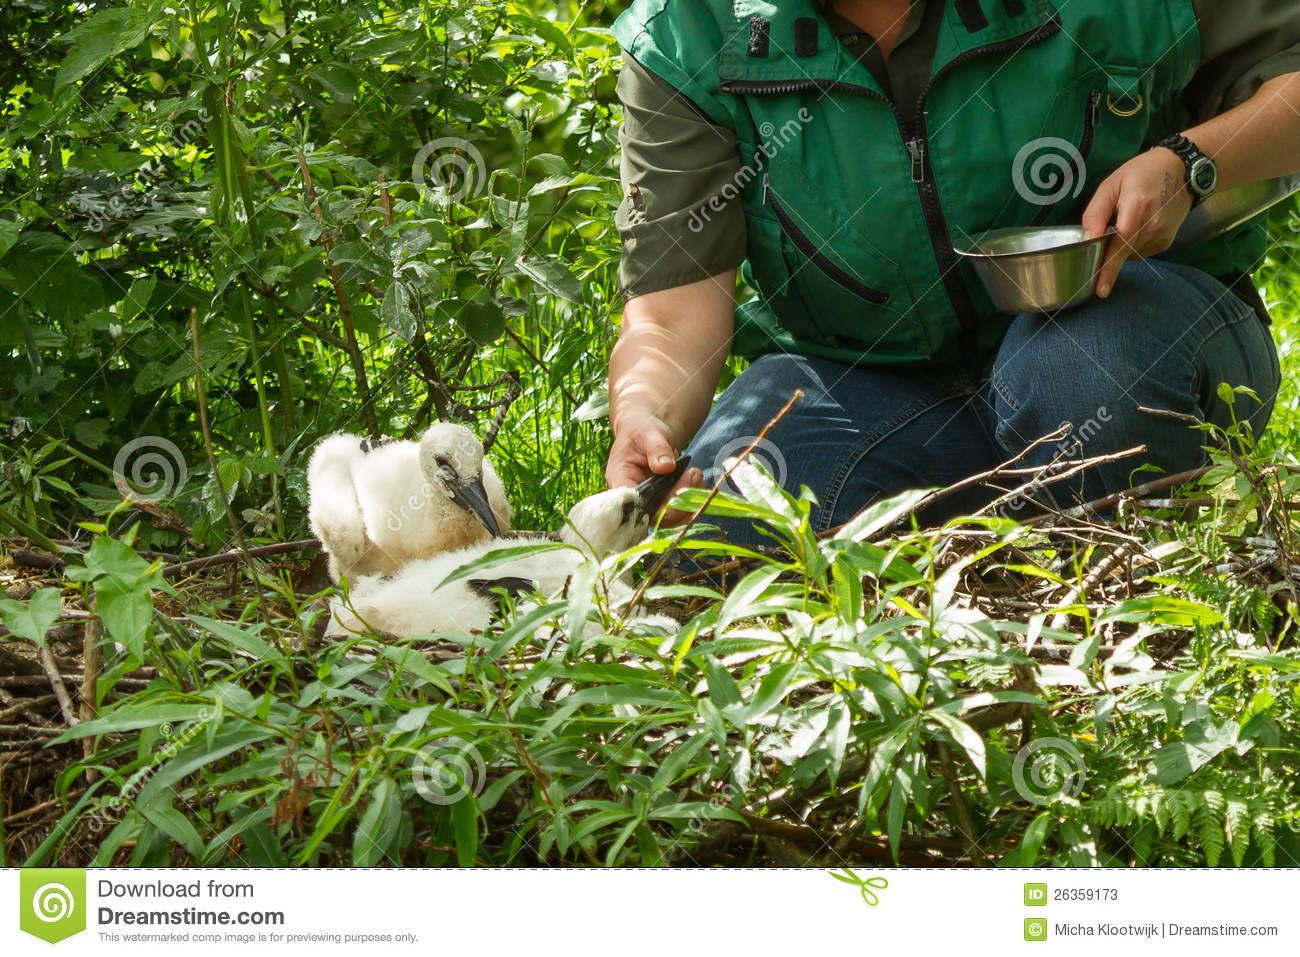 Human feeding two young stork chicks